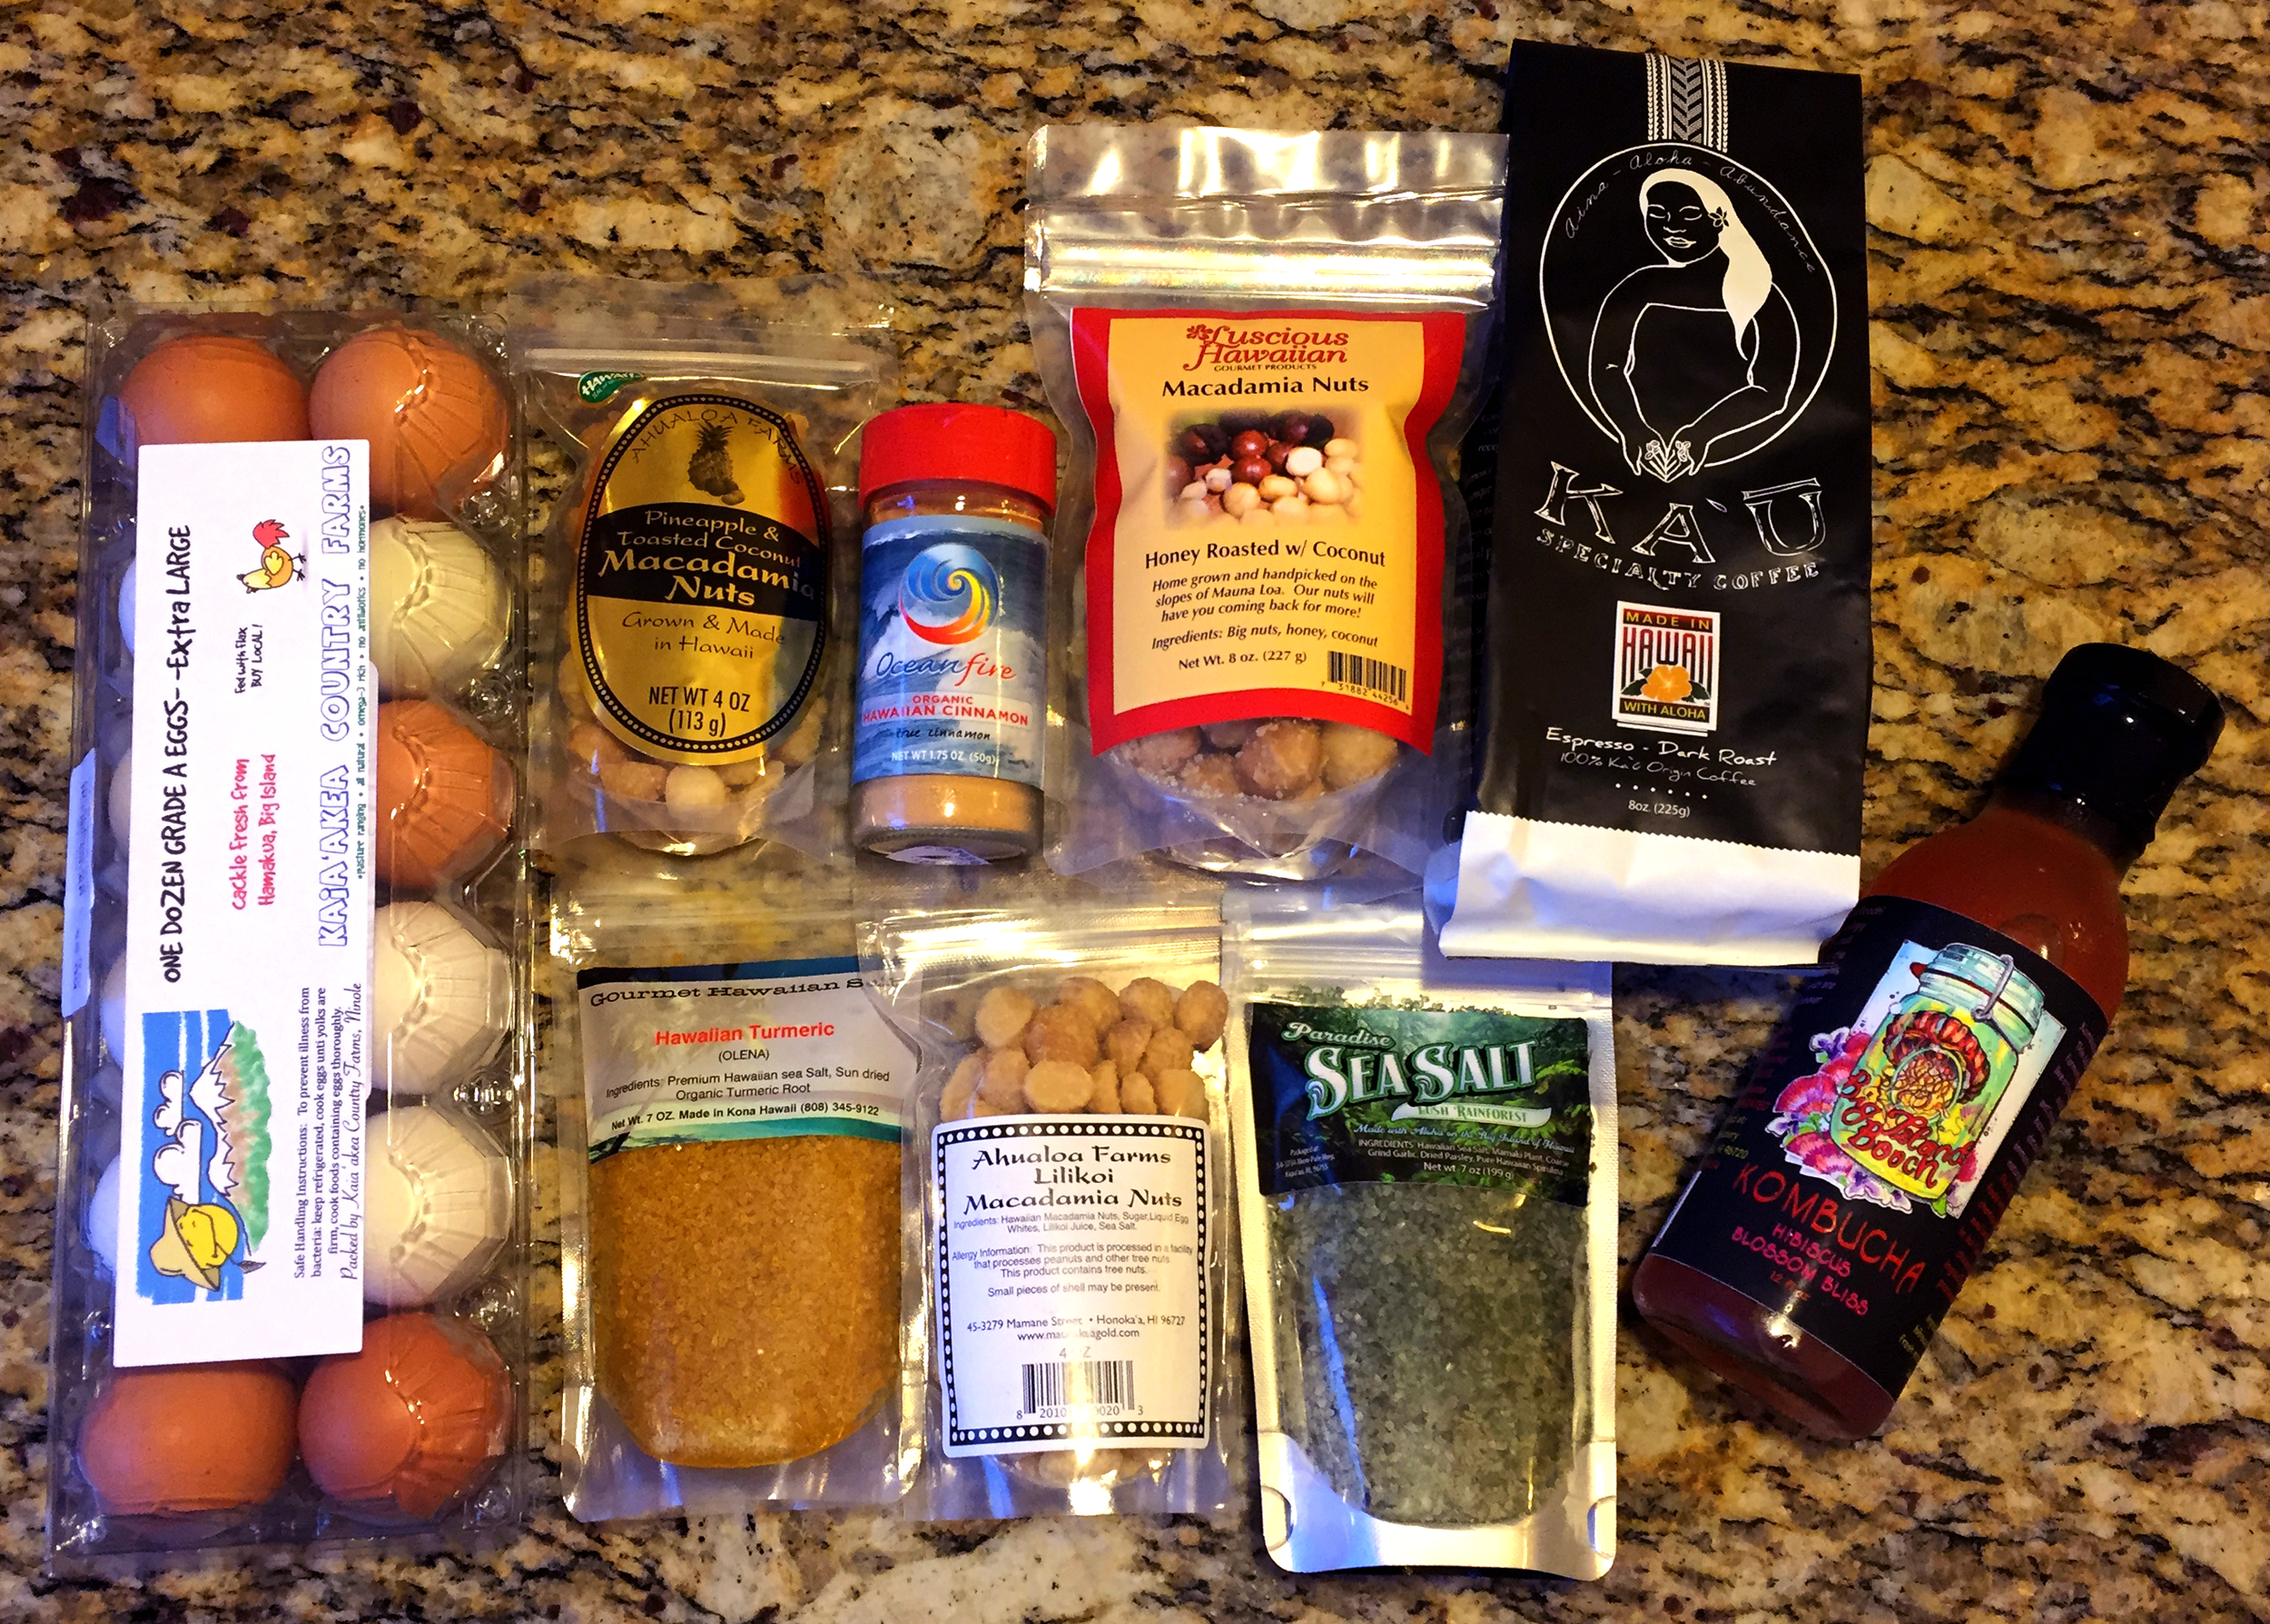 Haul from Island Naturals Market in Hilo